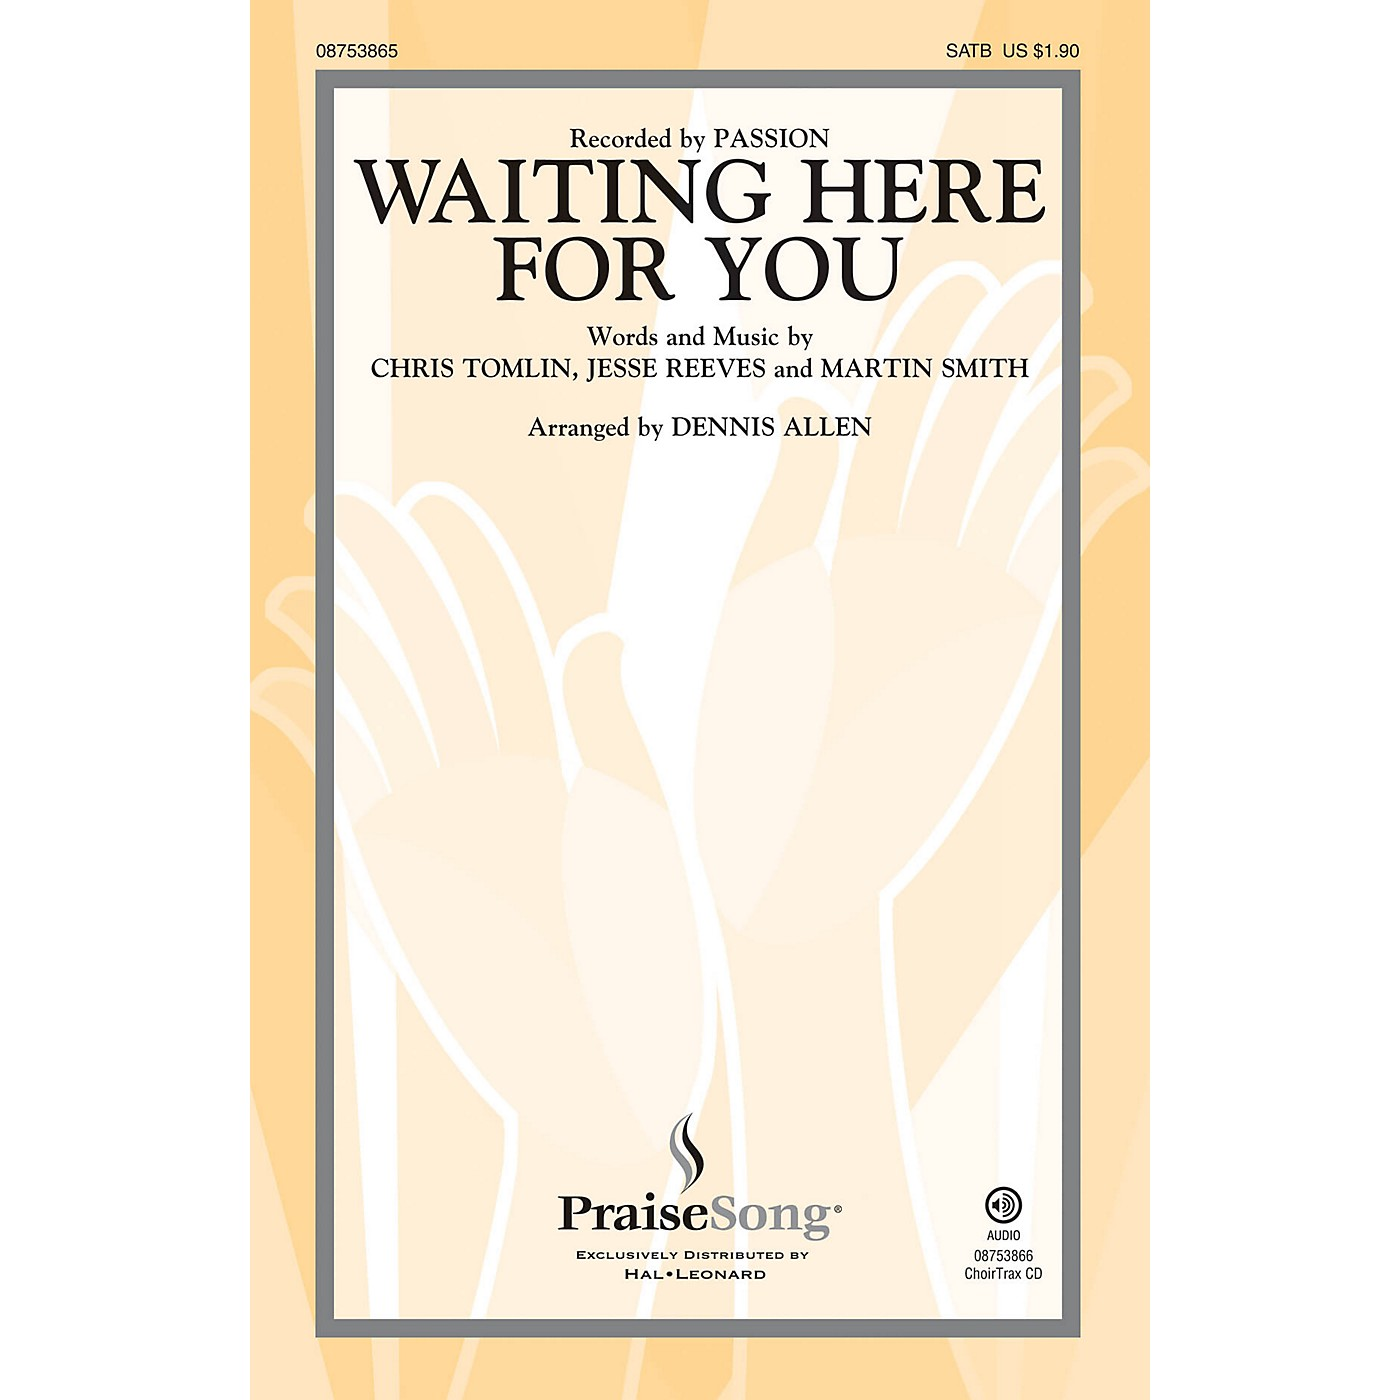 PraiseSong Waiting Here for You SATB by Passion arranged by Dennis Allen thumbnail